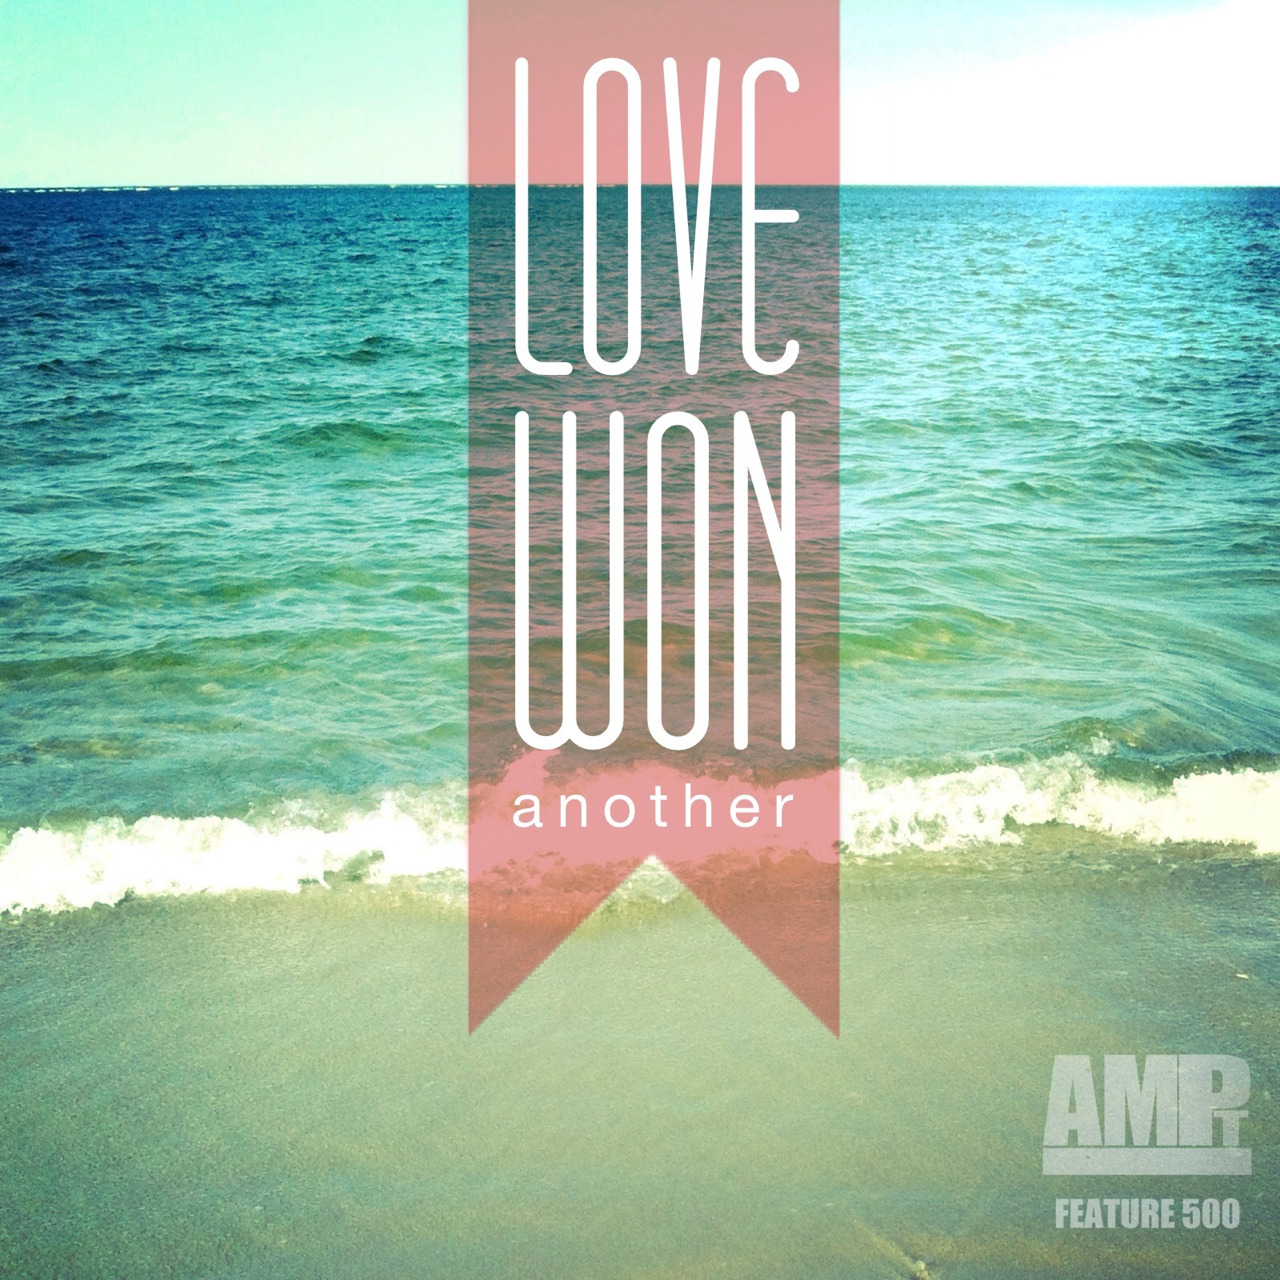 "Feature 500 photo submitted by Sean O'Connor - @seanoconnor  Title: Love Won Another   Process: 1. Upload image into photoforge 2 2. Straighten and crop to square format 3. Slightly increase vibrance, exposure, and contrast 4. Play with levels giving the picture a blue/green tint 5. Resize image to 5MP, save to camera roll 6. Import saved image into lenslight to add artificial lighting to enhance/slightly exaggerate natural lighting, render flare, save to camera roll 7. Open saved photo in picfx, add creek filter on 50% opacity, add marshmallow filter on 50%, save to camera roll 8. Open phonto, (on white background) make ribbon using letters and shapes, save to camera roll 9. Open edited photo as ribbon shape in blender, set blending mode to darken with 50% opacity, save to camera roll 10. Open saved photo in phonto and add text with negative kerning on words ""love"" and ""won"" (typeface- matchbook) and positive kerning on word ""another"" (typeface- helvetica neue), save to camera roll   Bio: I first got into mobile photography and editing shortly after I joined instagram. I saw work from some artists that I was following and I was amazed to find out that they were completely done on an iPhone. With the right combination of creativity and apps, professional quality work is more than possible. I am from Southern California but during the school year I am a student at Massachusetts College of Art and Design studying graphic design.  Lately, I've been super into logos as branding (simplistic and vintage-like to be exact). In the next few years I am going to be starting a company combining my love for design and snowboarding with my growing passion of helping people find God; those poor both physically/financially and spiritually. Anything is possible with the right mindset! Thanks for taking the time to read this guys. Check out my work and keep an eye out for my company which should hopefully be dropping soon."